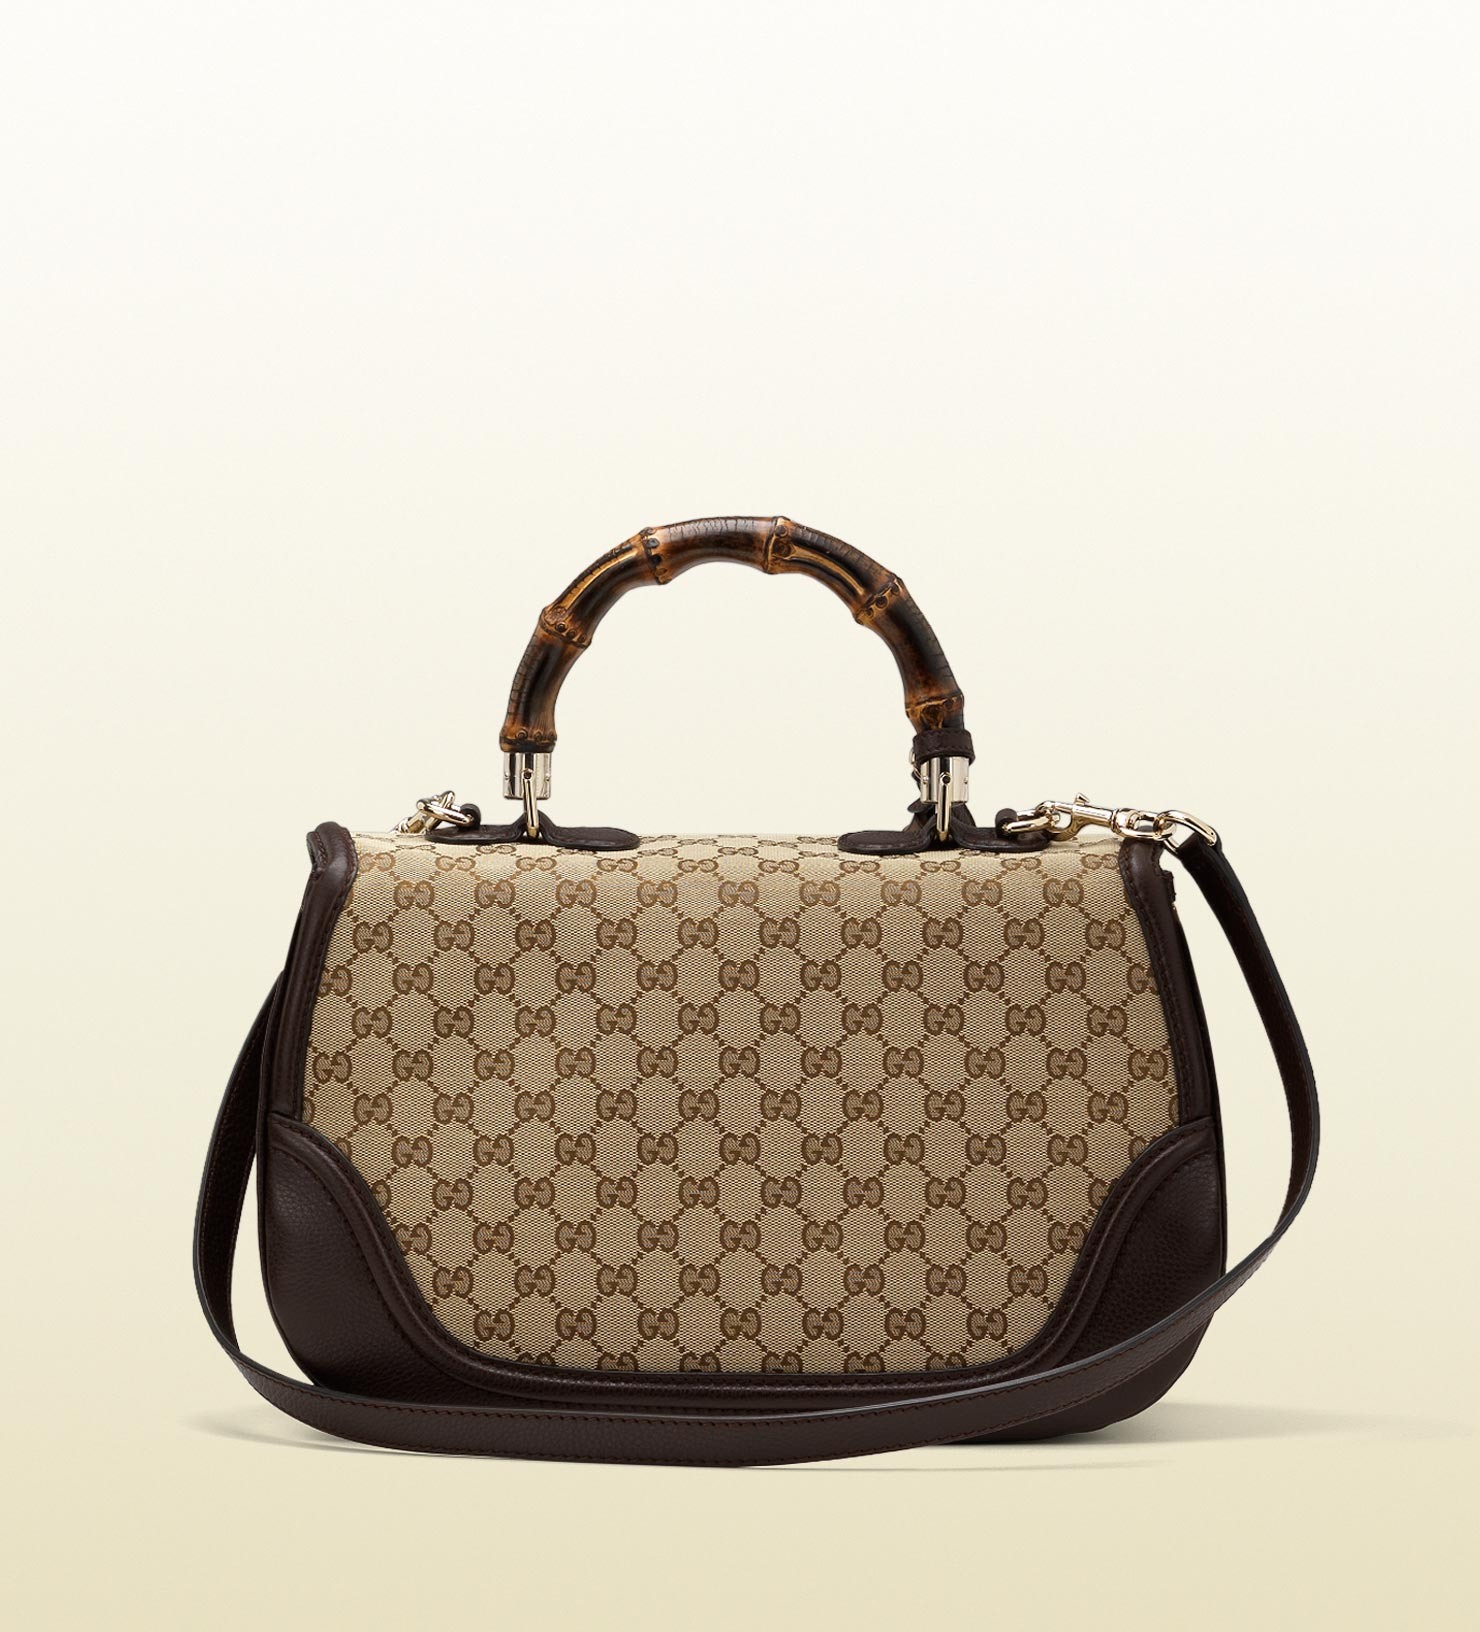 28fb0d06b35e Gucci Canvas Bag With Bamboo Handle | Stanford Center for ...